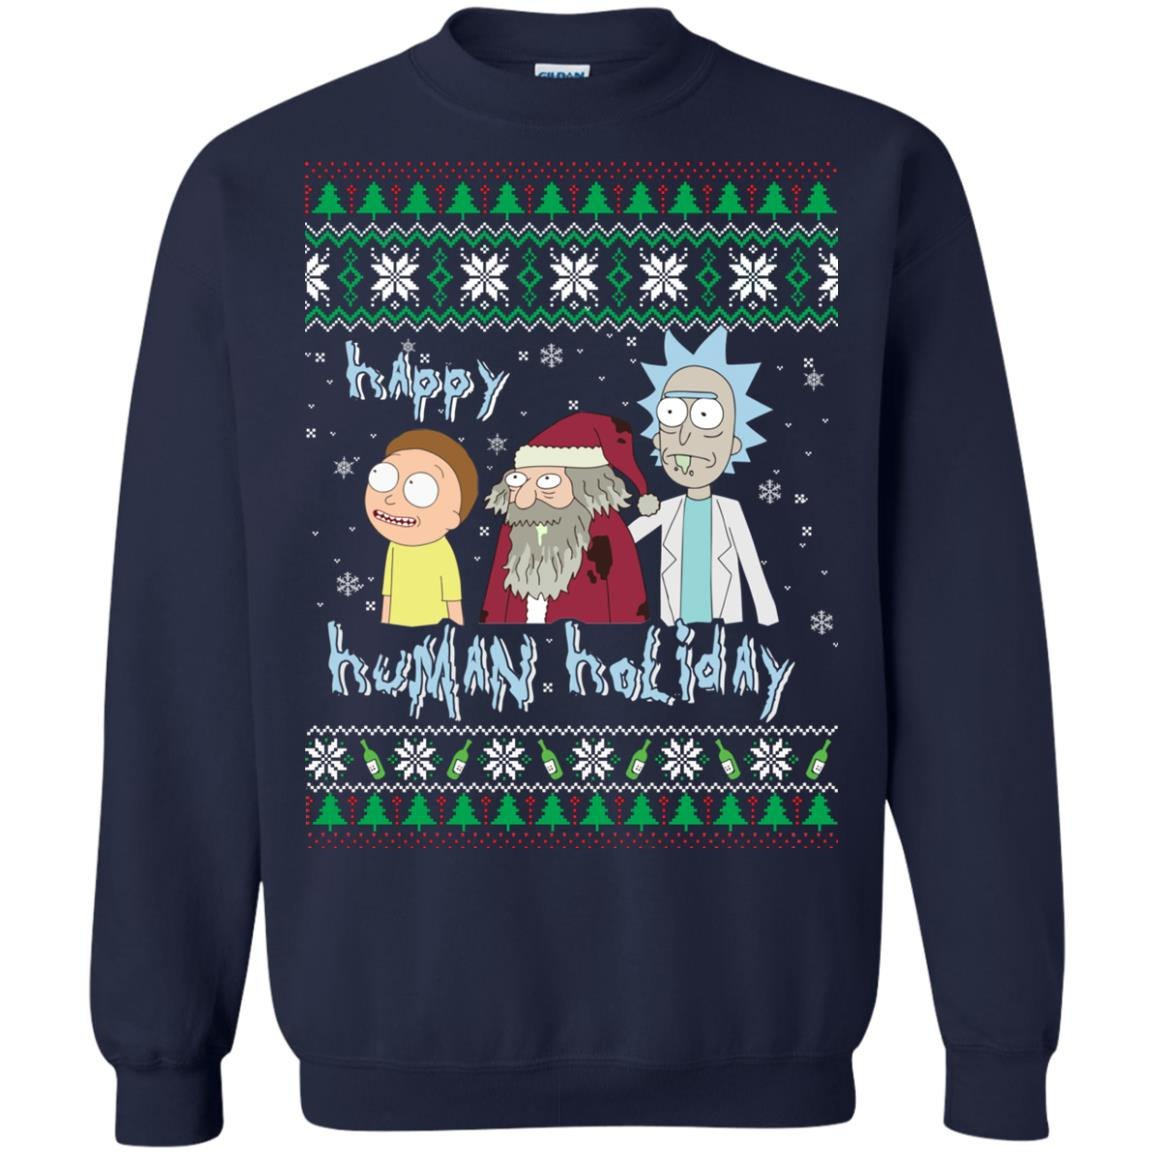 image 452px Rick and Morty: Happy Human Holiday Christmas Sweater